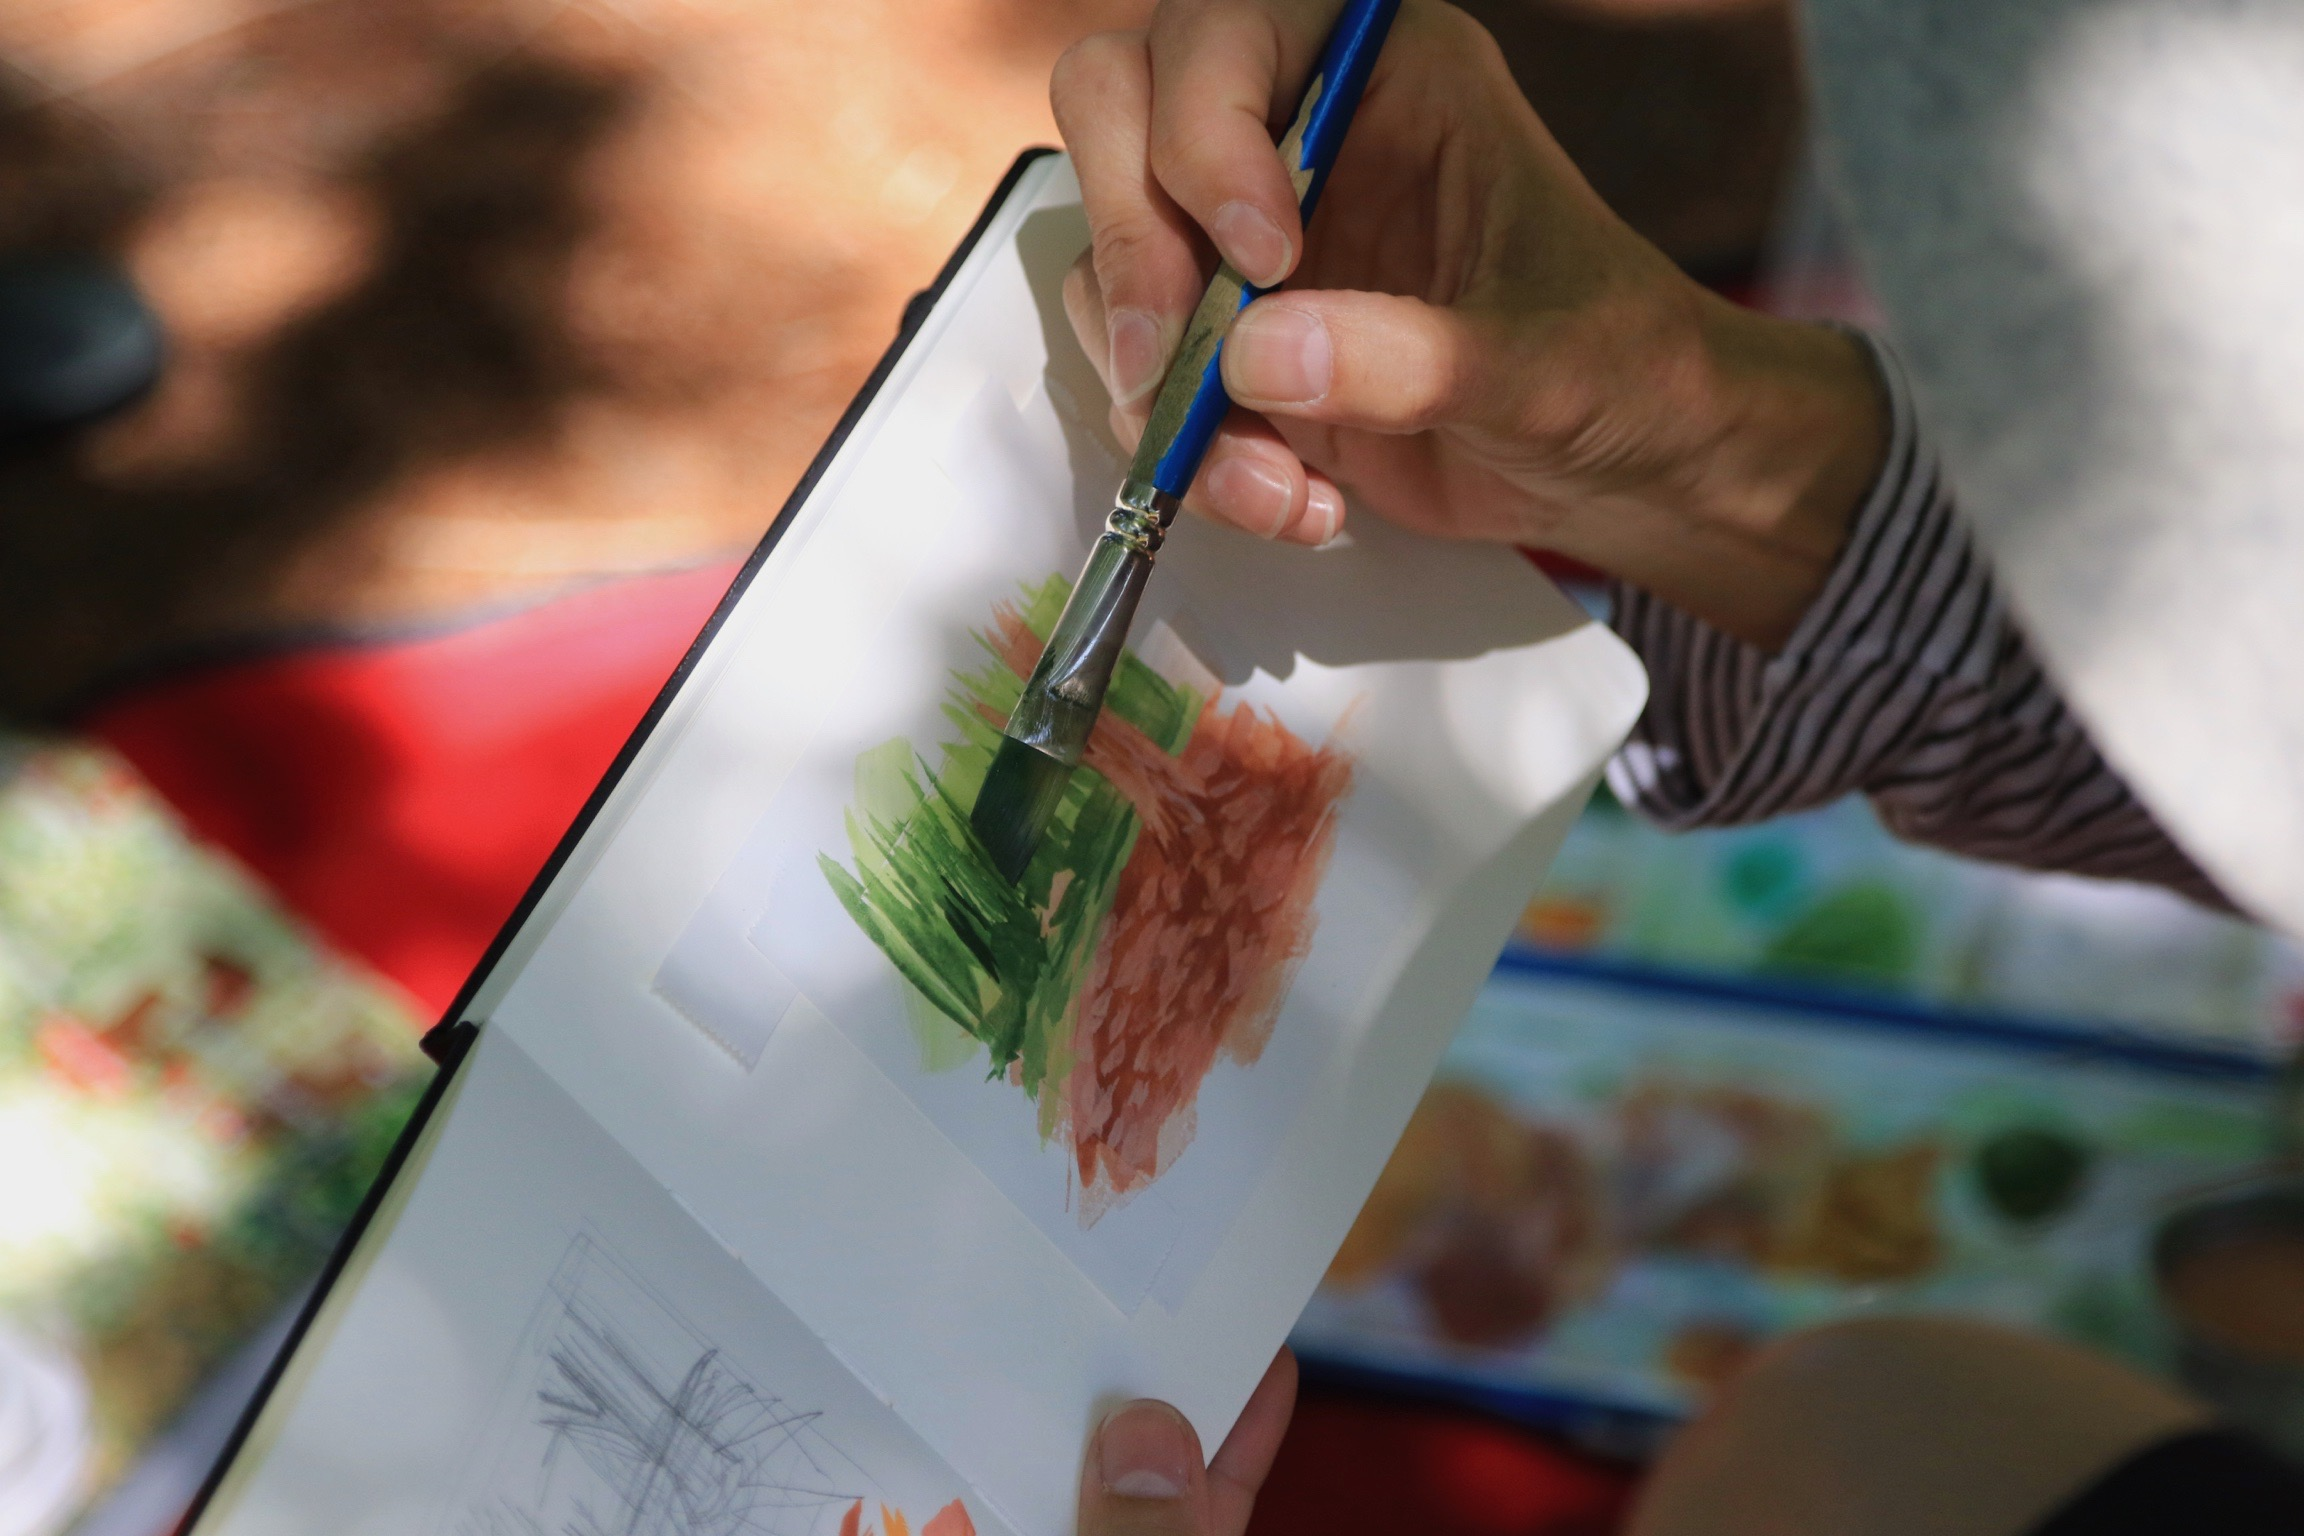 My Small paintings artist Amanda Mears painting plein air tiny watercolour art at the Huntington Gardens, CA